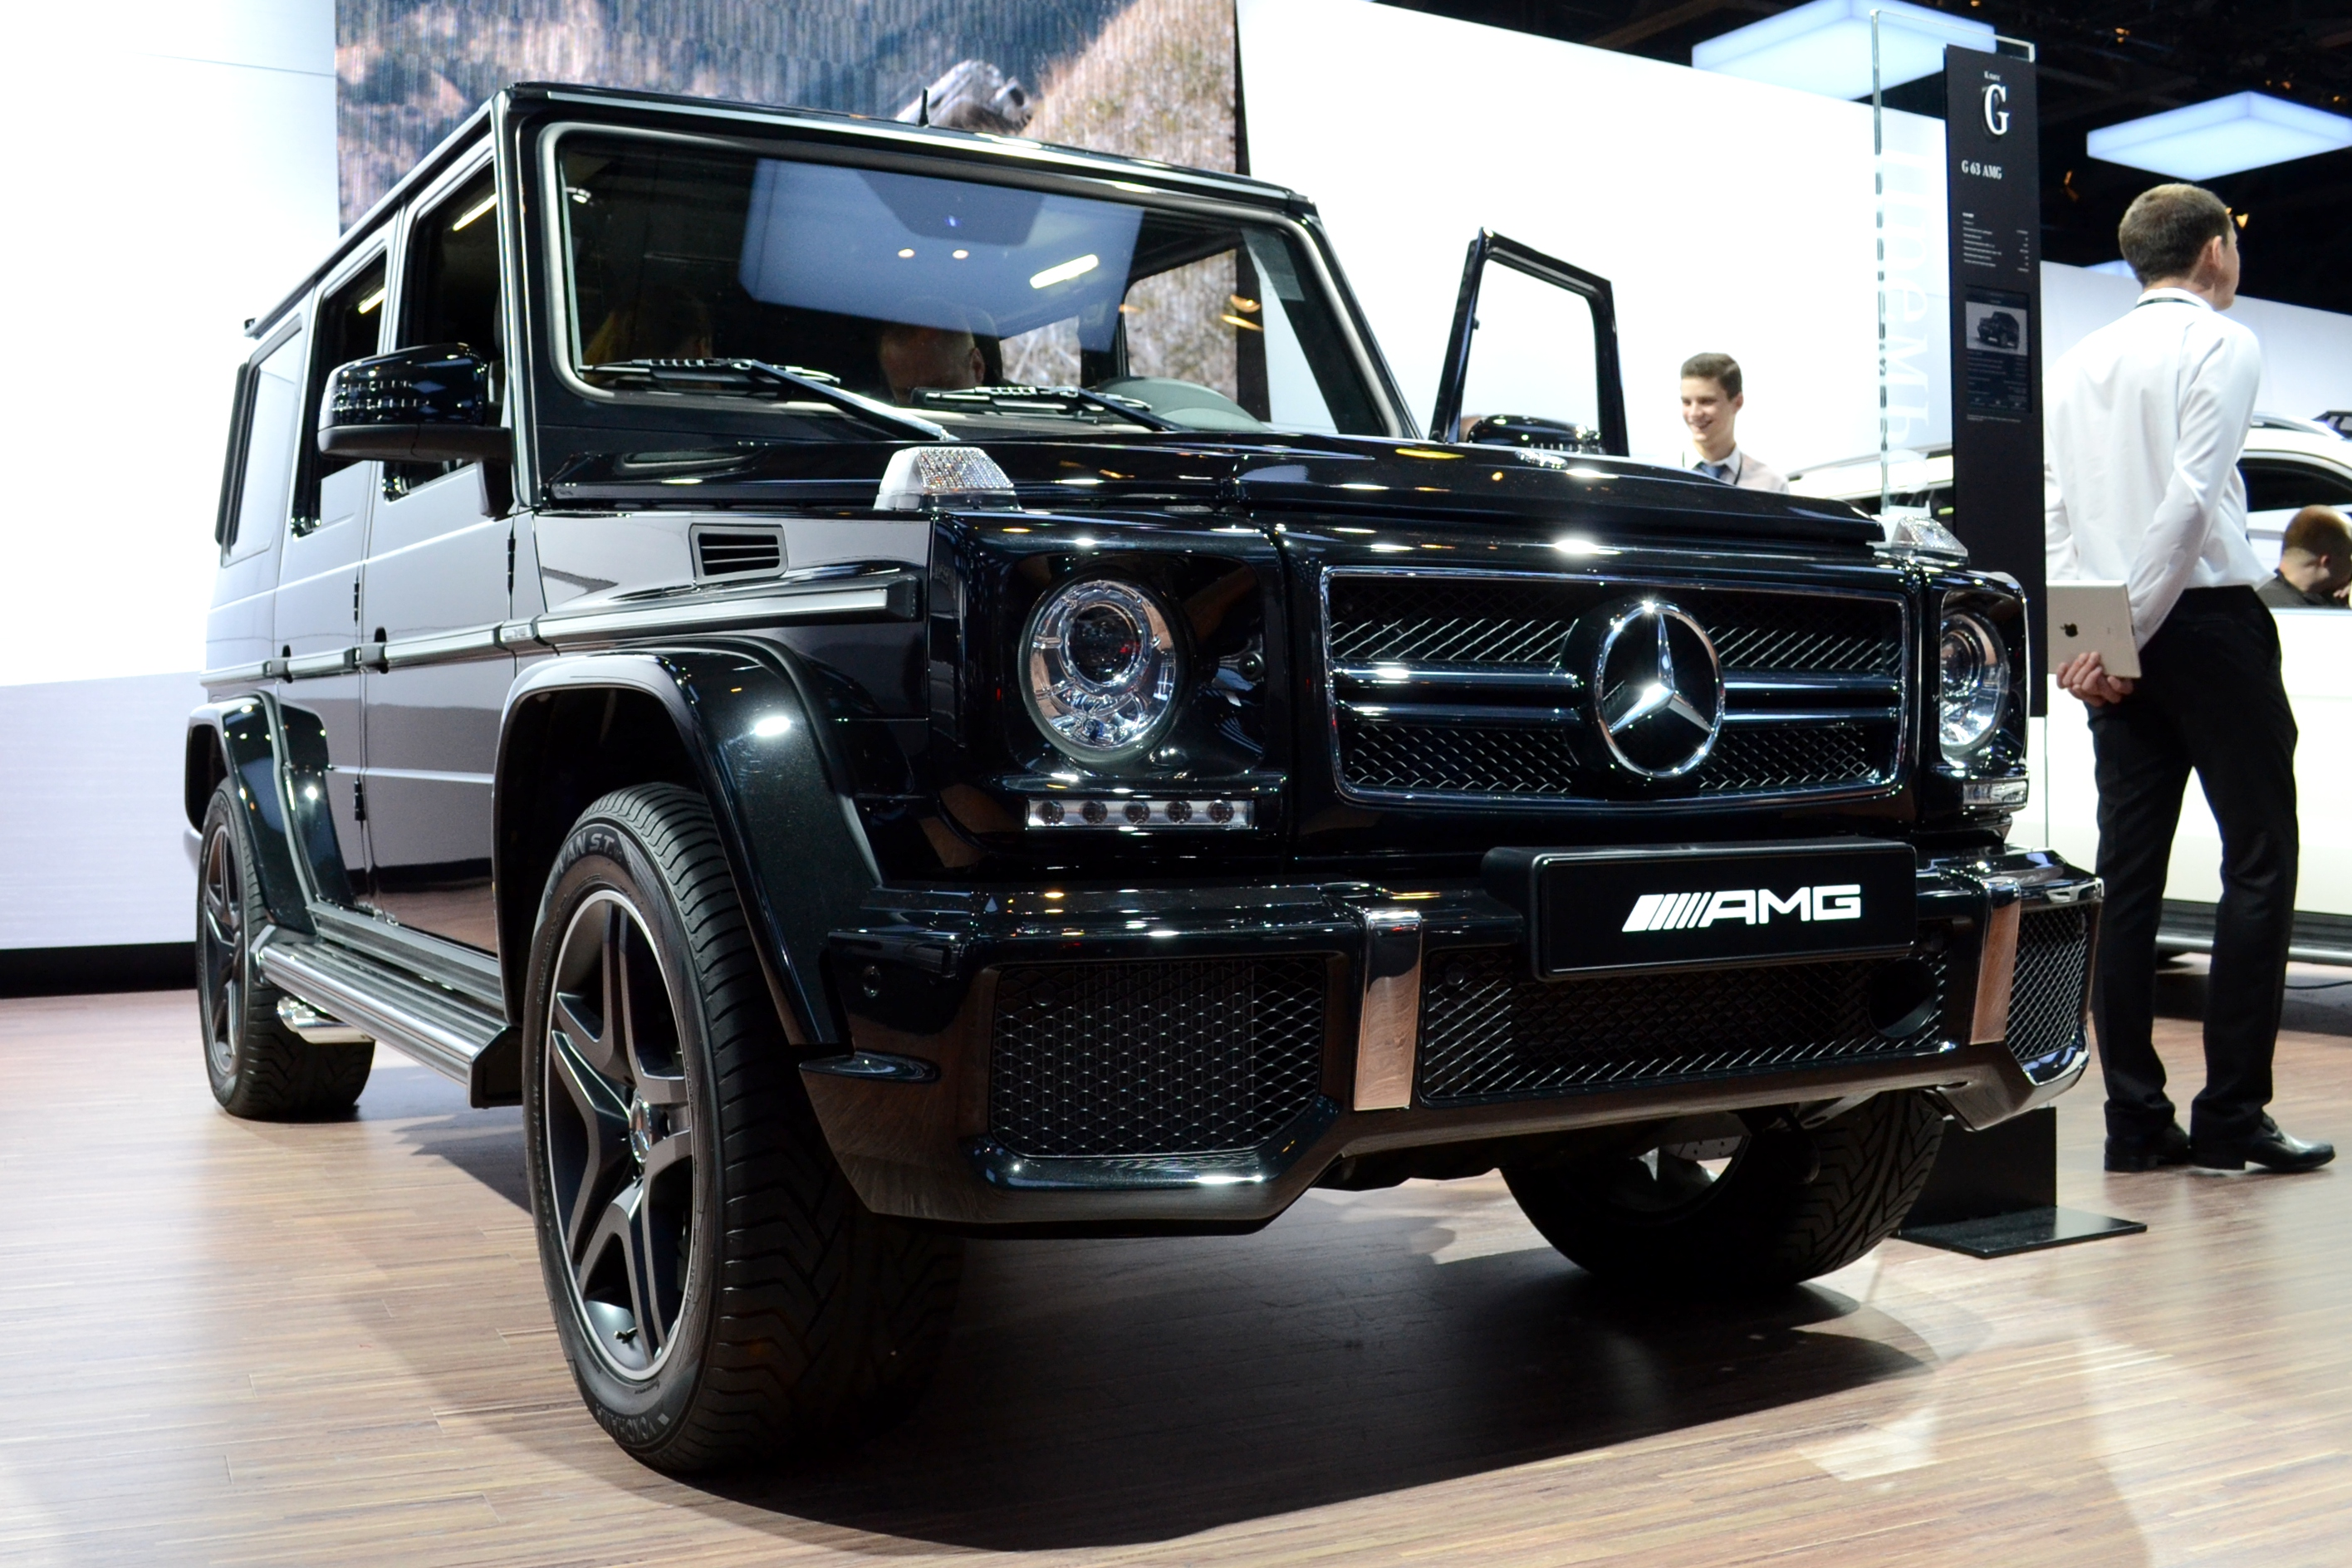 Mercedes benz g class military wiki fandom powered by for Mercedes benz g class pictures